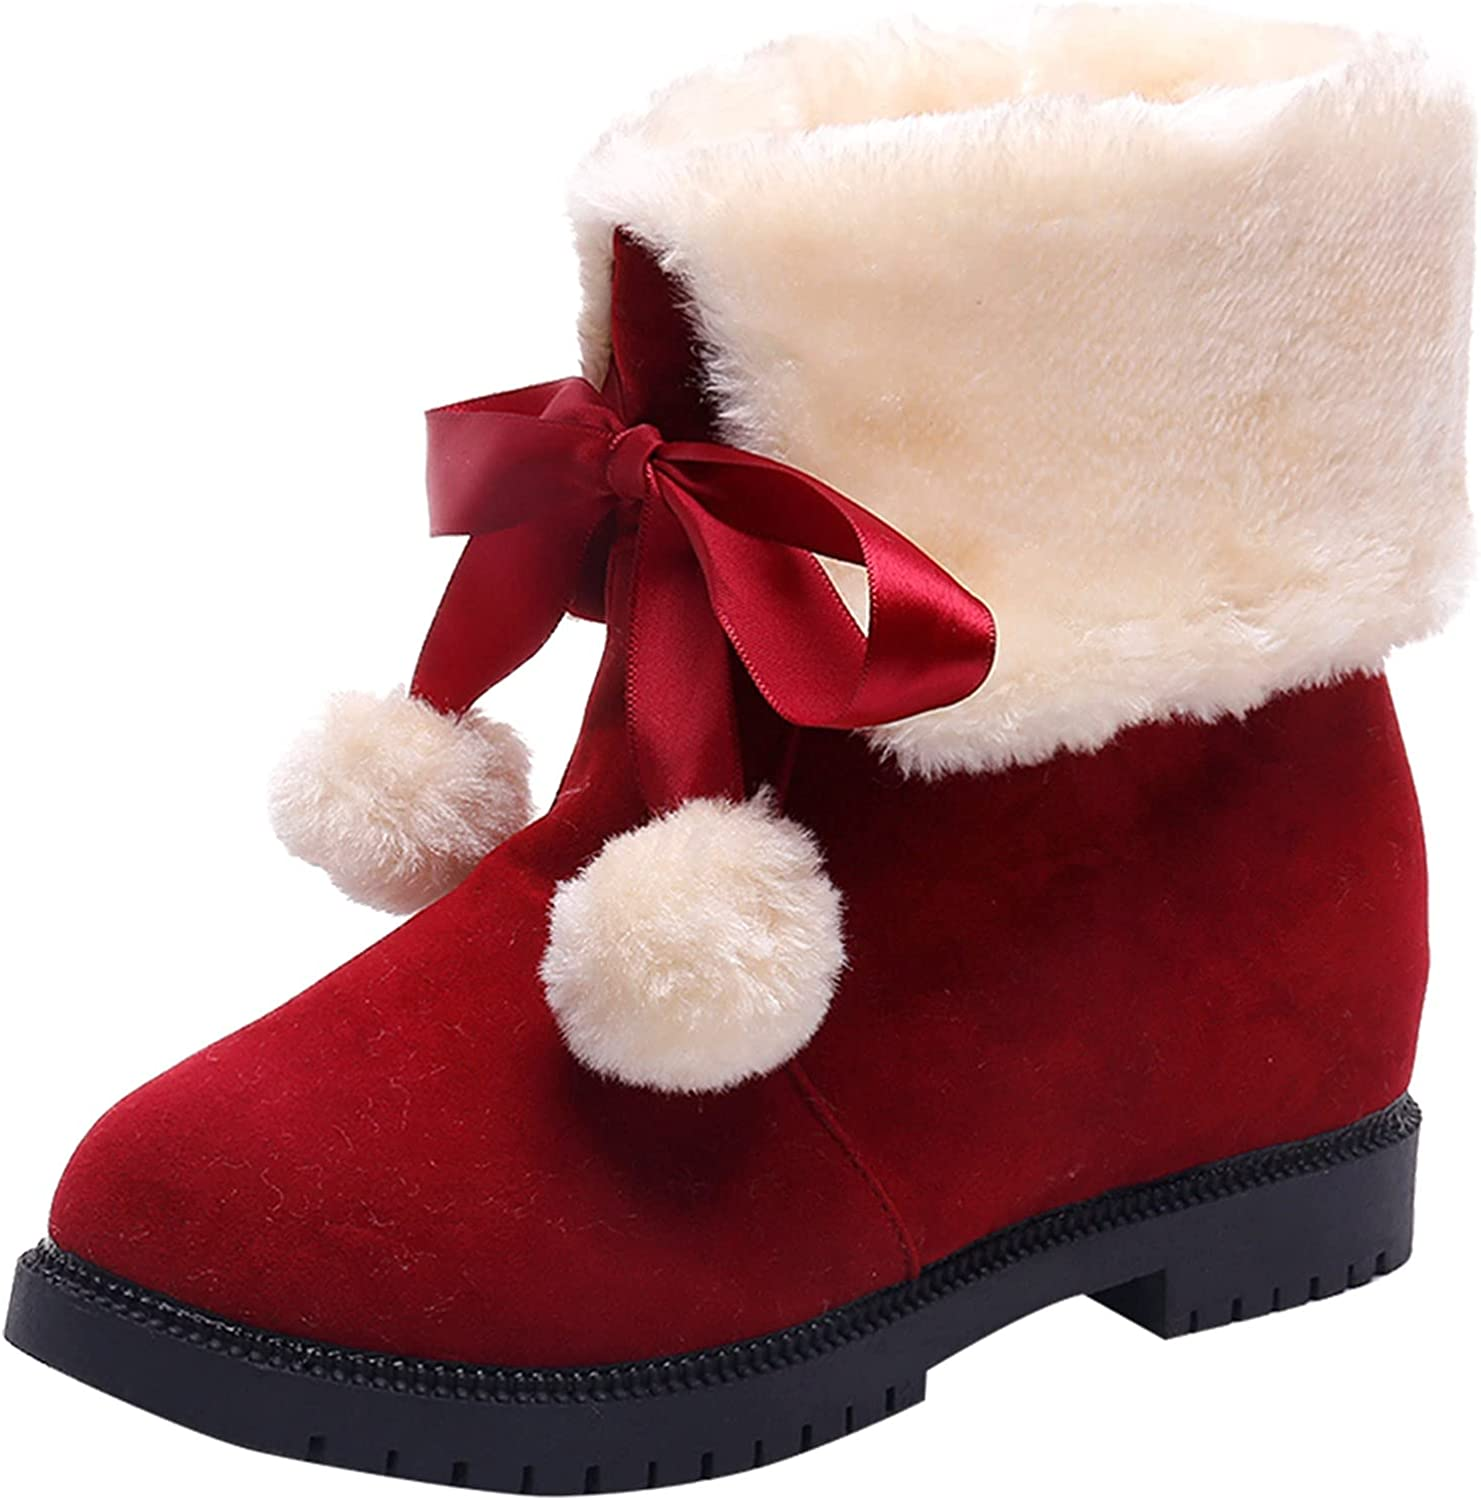 Euone_Clothes Boots for Women, Fashion Women's Shoes Thick-Soled